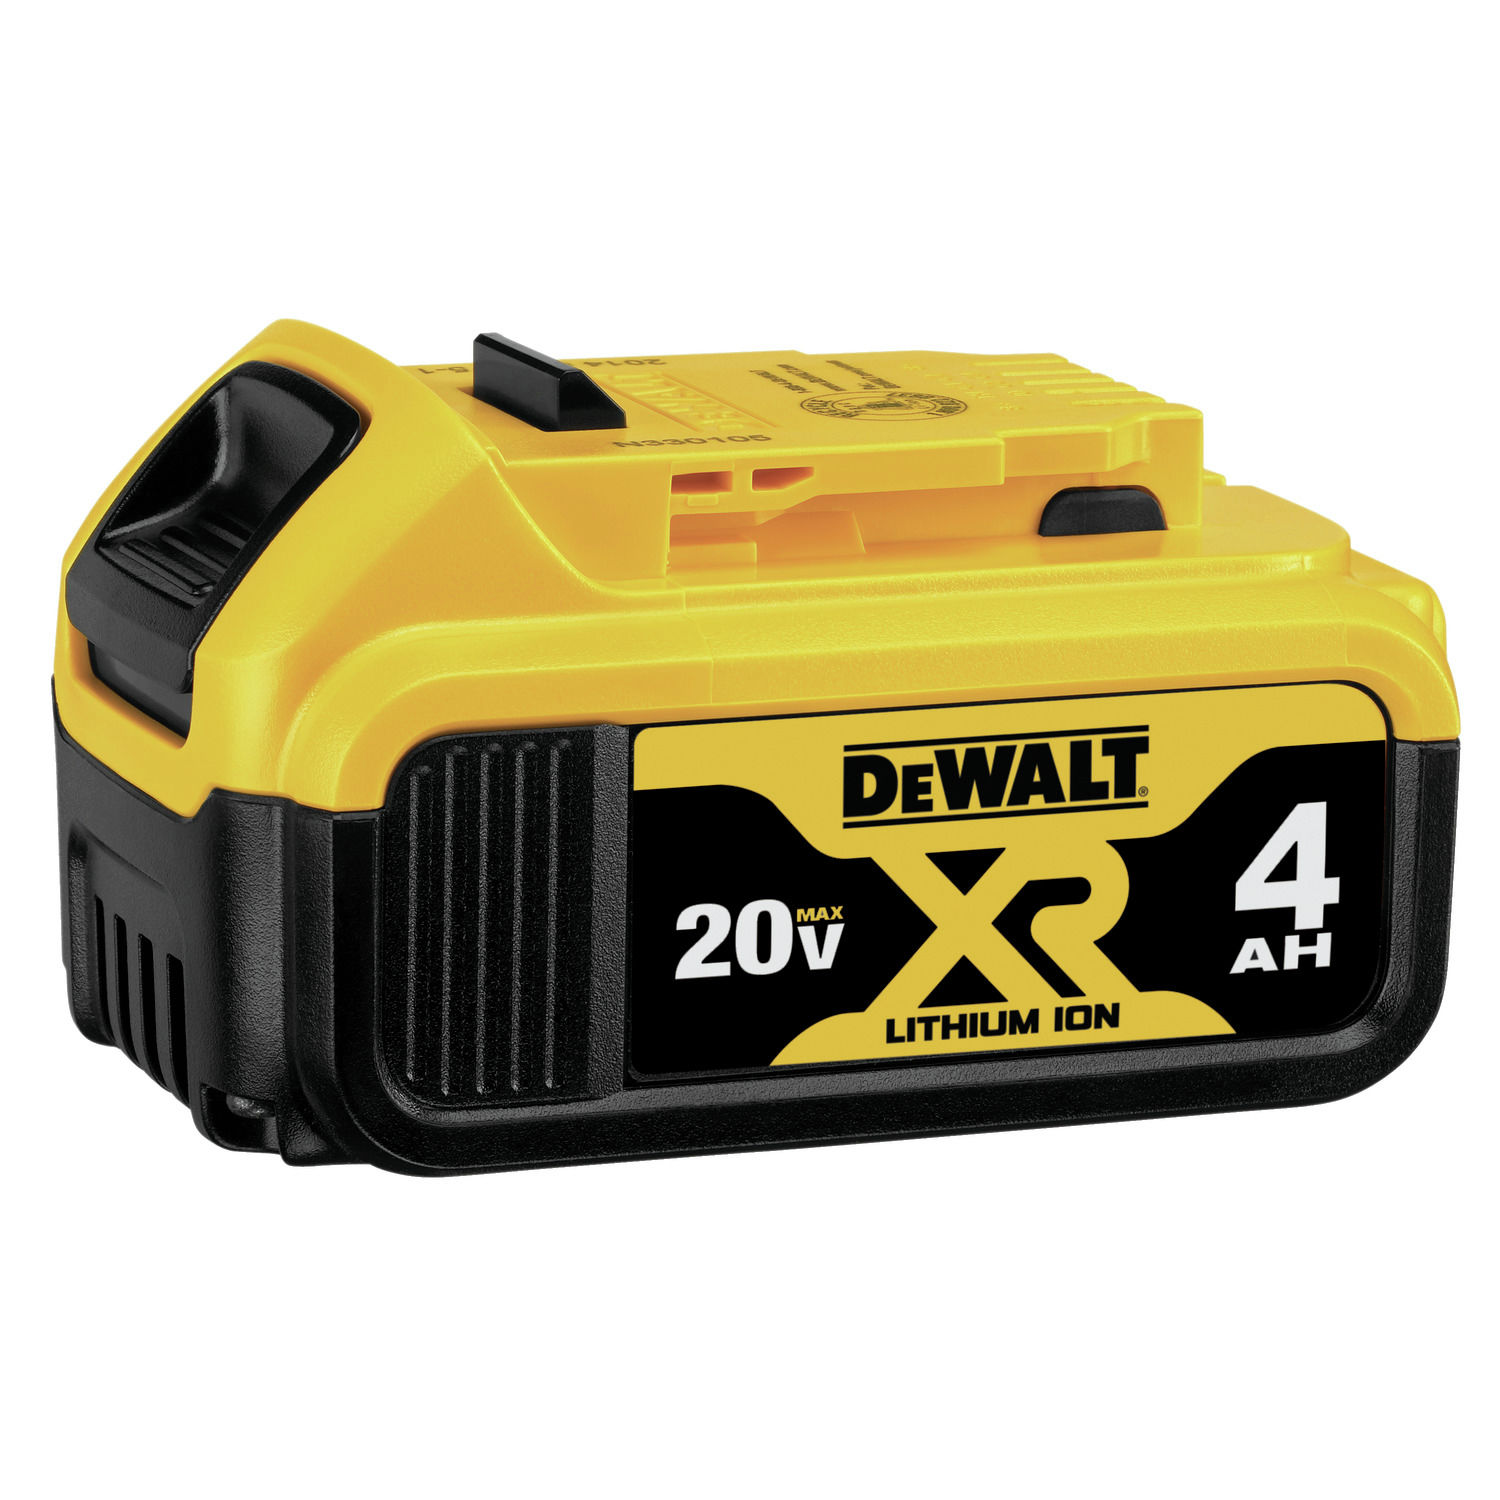 Dewalt DCB204 battery